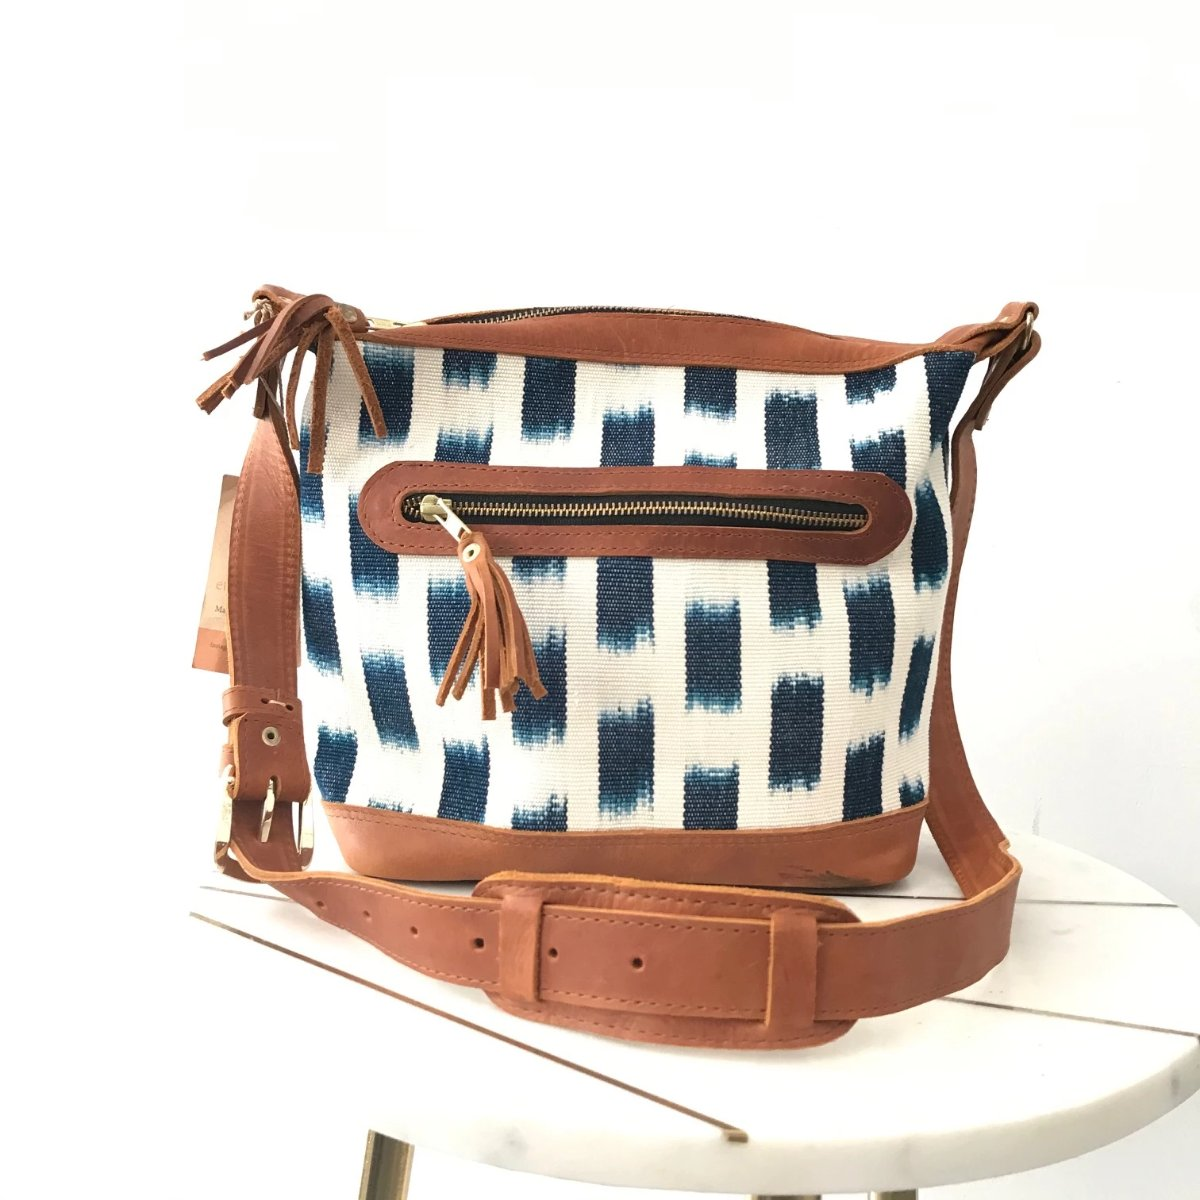 Piedra Azul Ikat Textile Leather Mini Bag